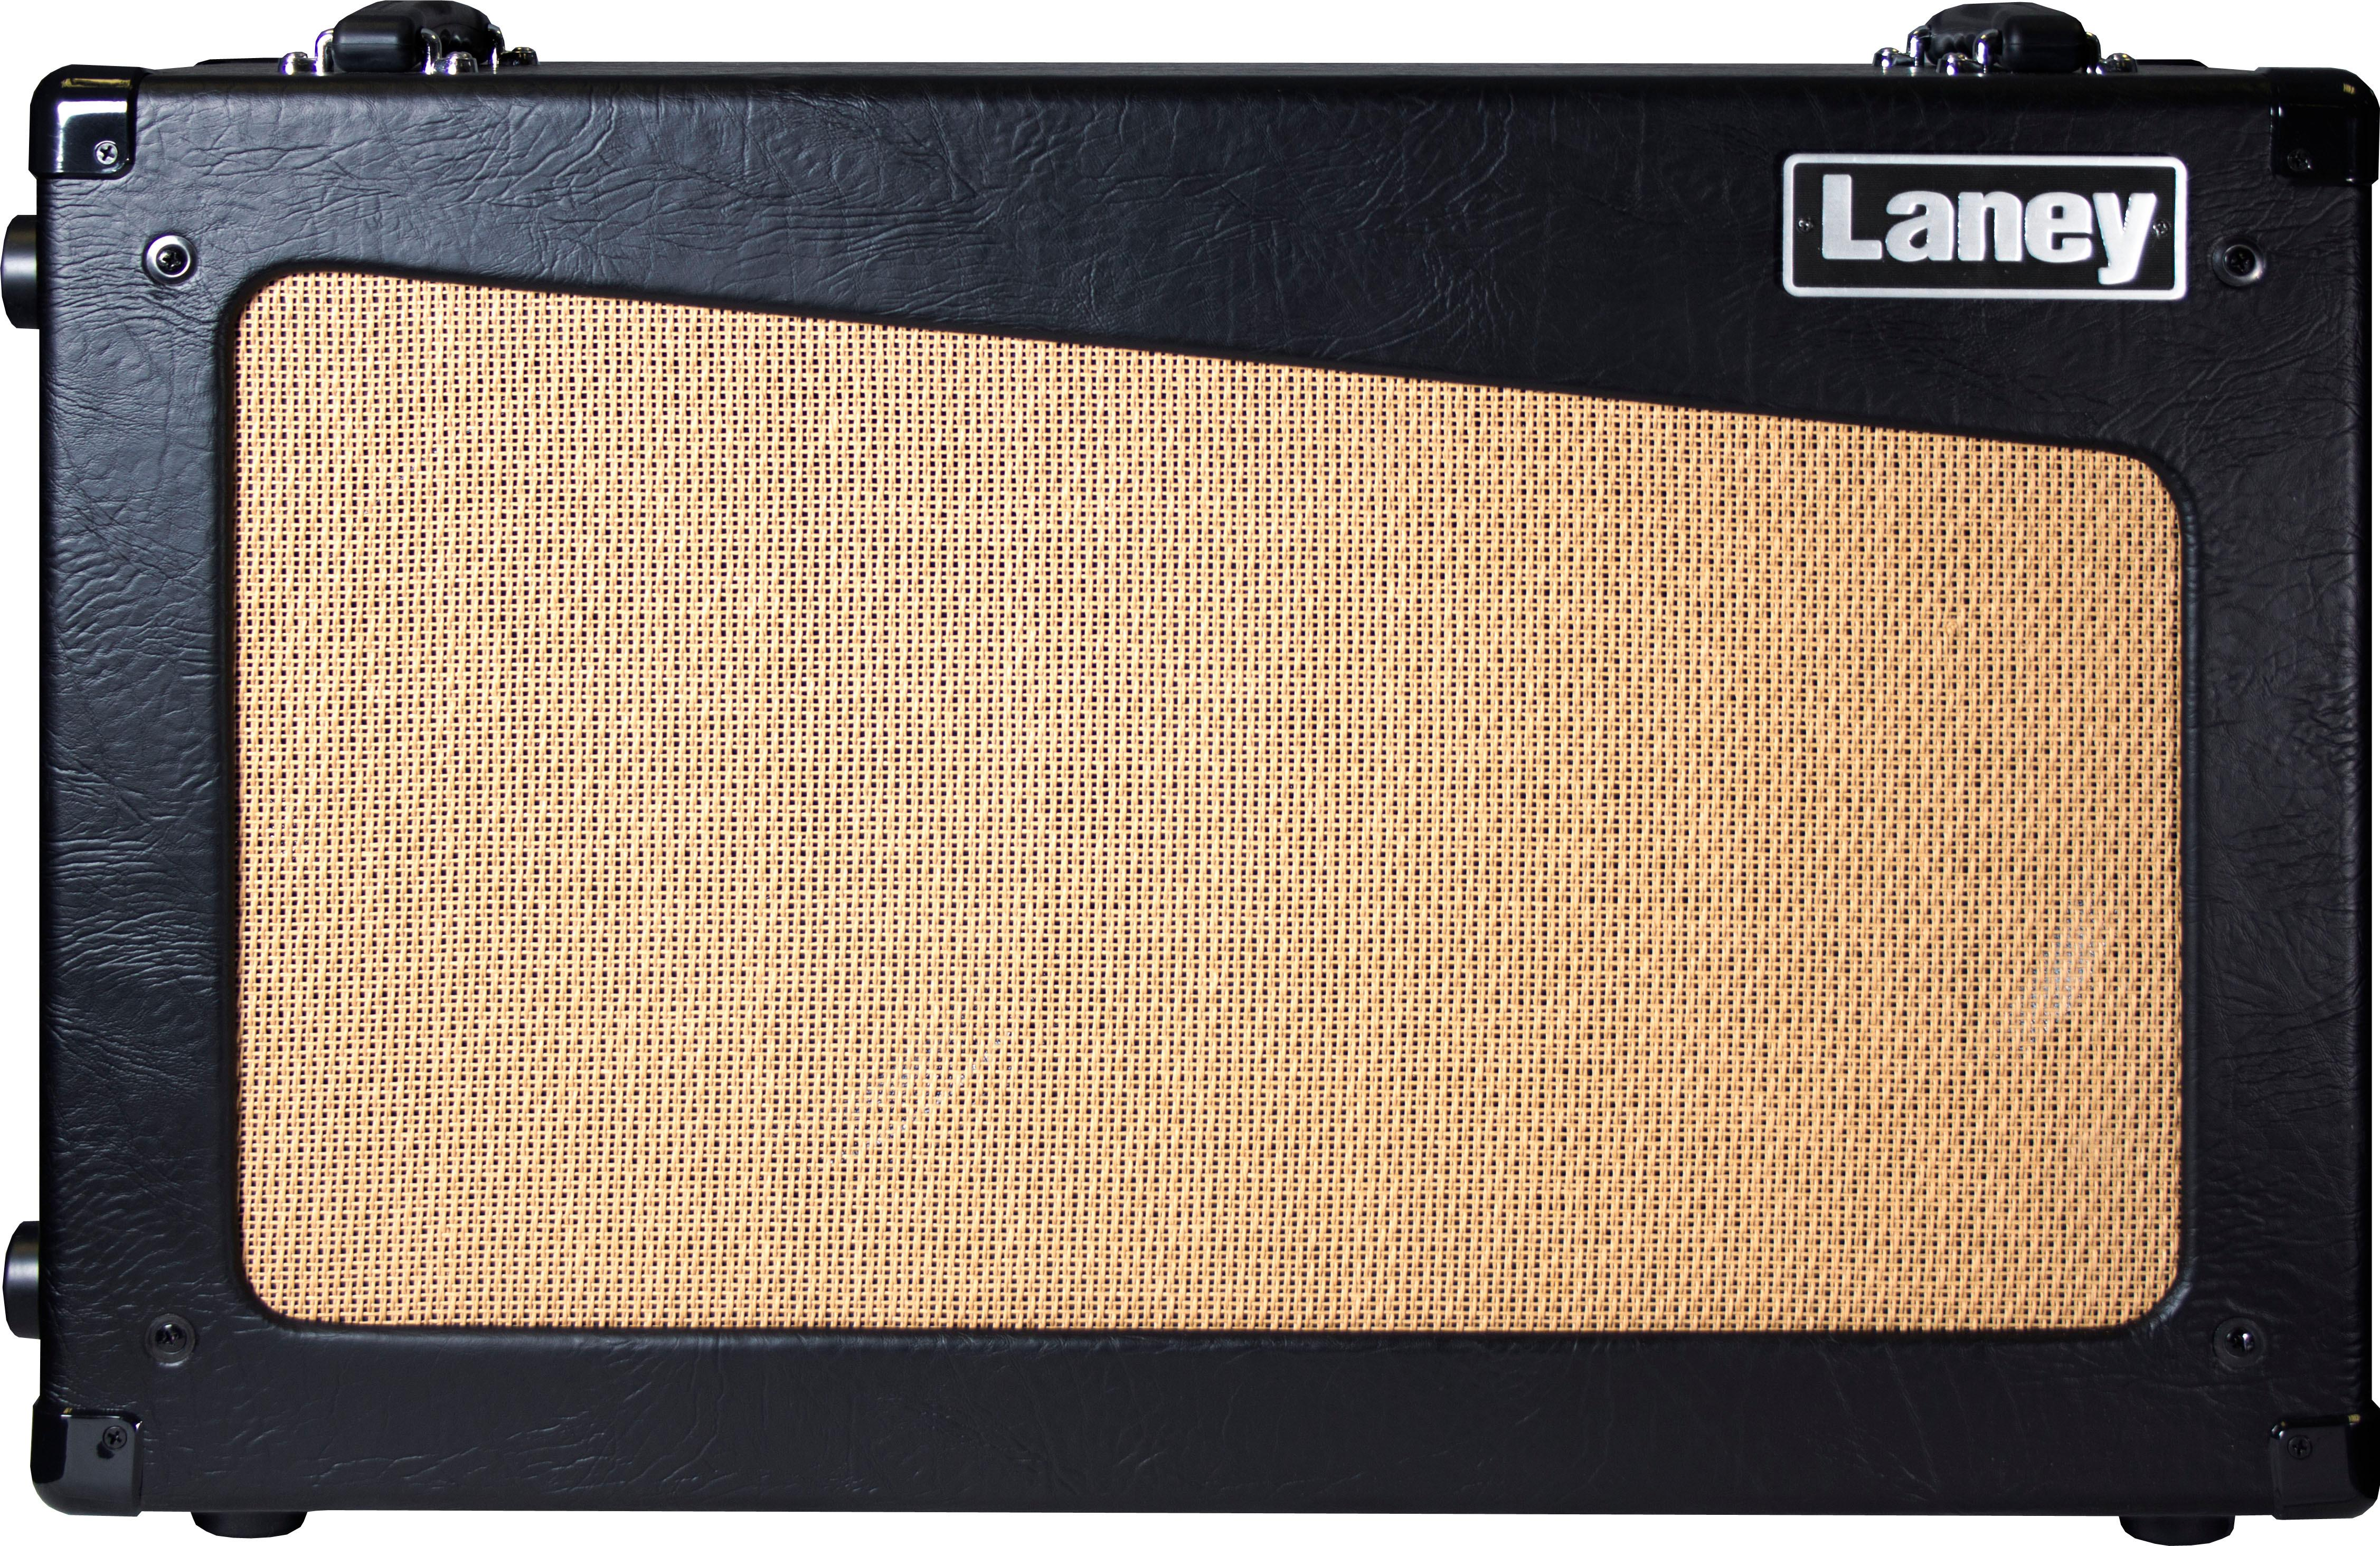 Best Guitar Amp Cabinets Amazoncom Laney Amps Cub All Tube Series Cub Cab 2x12 Guitar